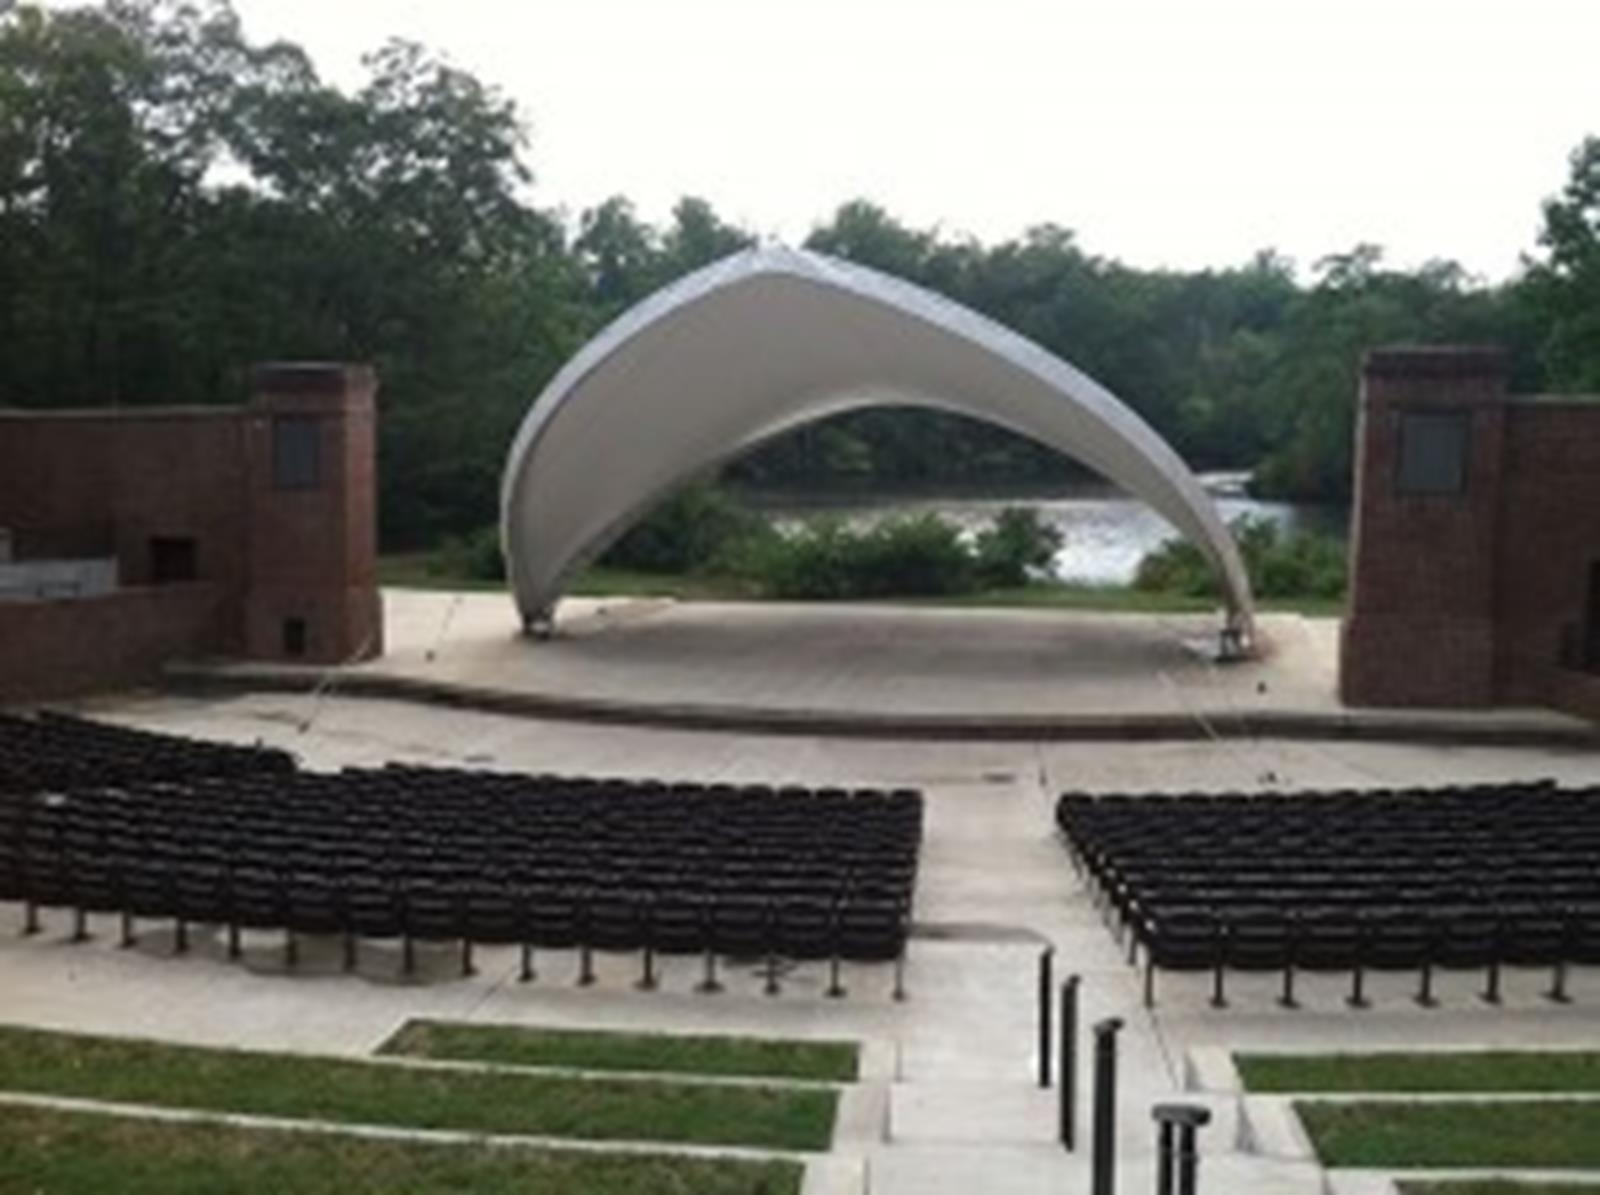 The Outdoor Amphitheater at William and Mary's College